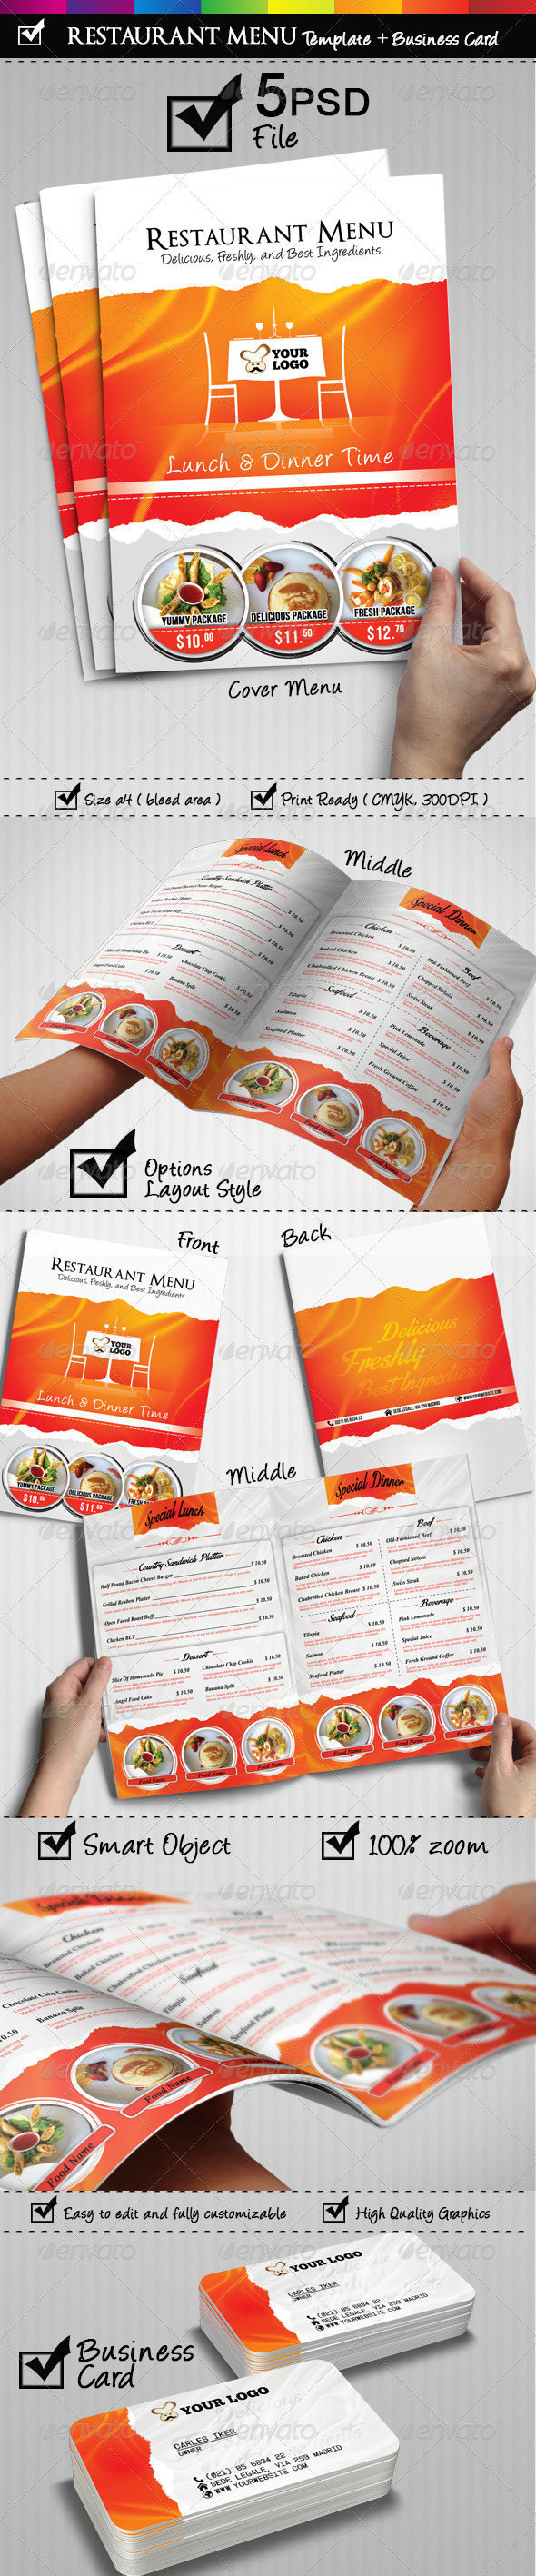 Restaurant Menu With Business Card Included - Food Menus Print Templates